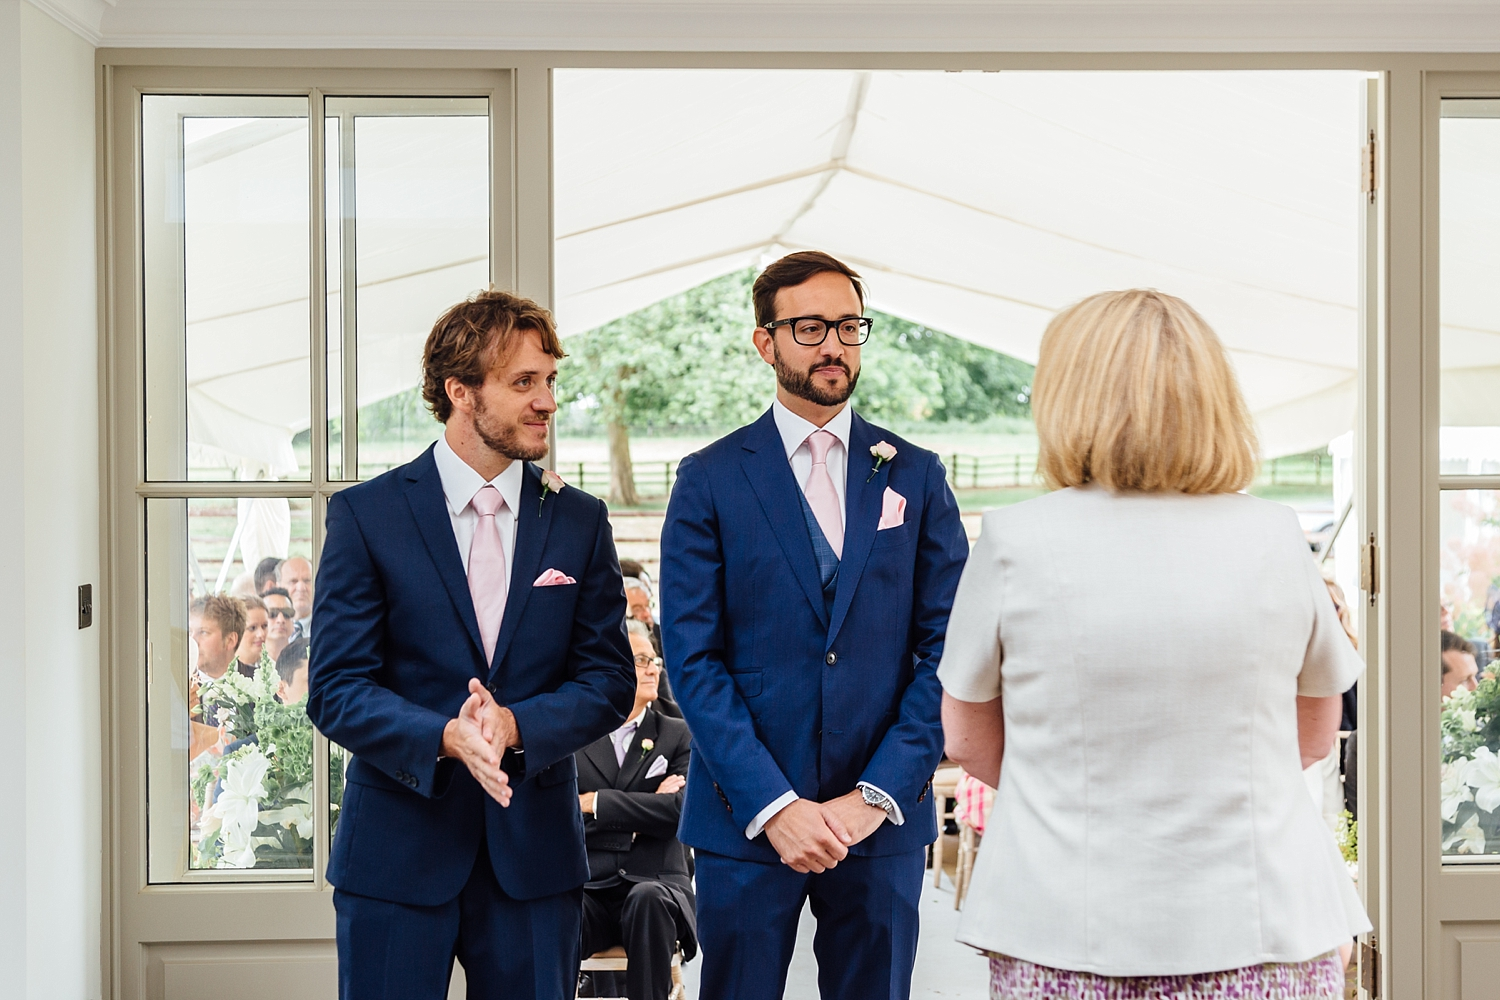 alexvictor-blog-natural-fun-relaxed-documentary-charlotte-jopling-wedding-photography-northamptonshire-home-garden-country-summer-25.jpg